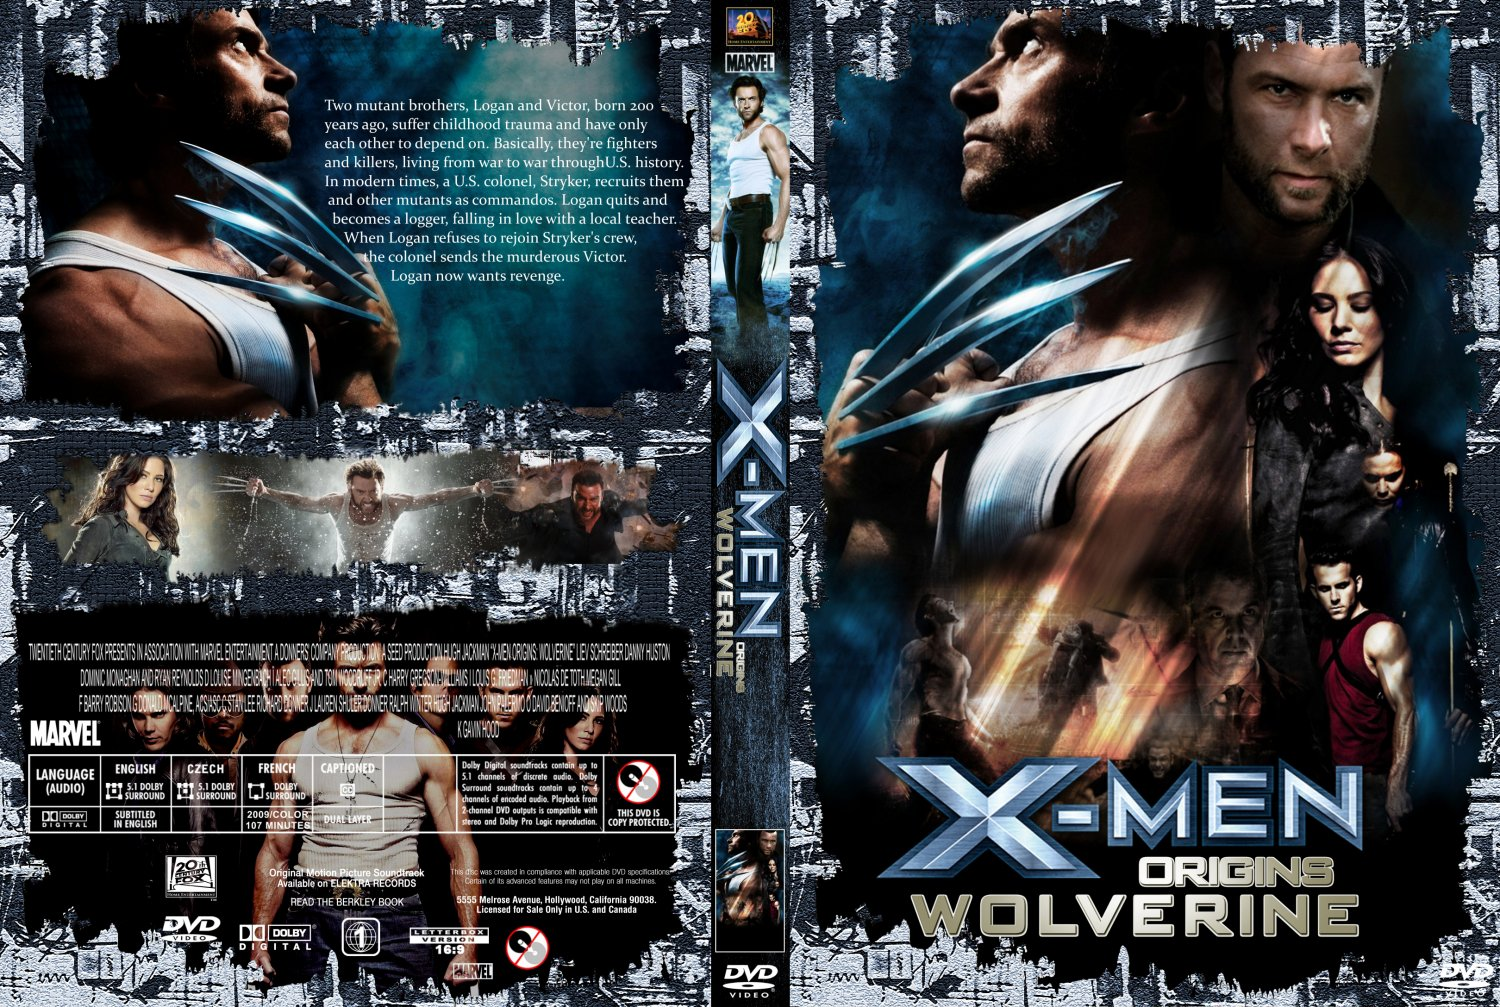 X-Men Origins-Wolverine Movie From W3 By Trivto On DeviantArt